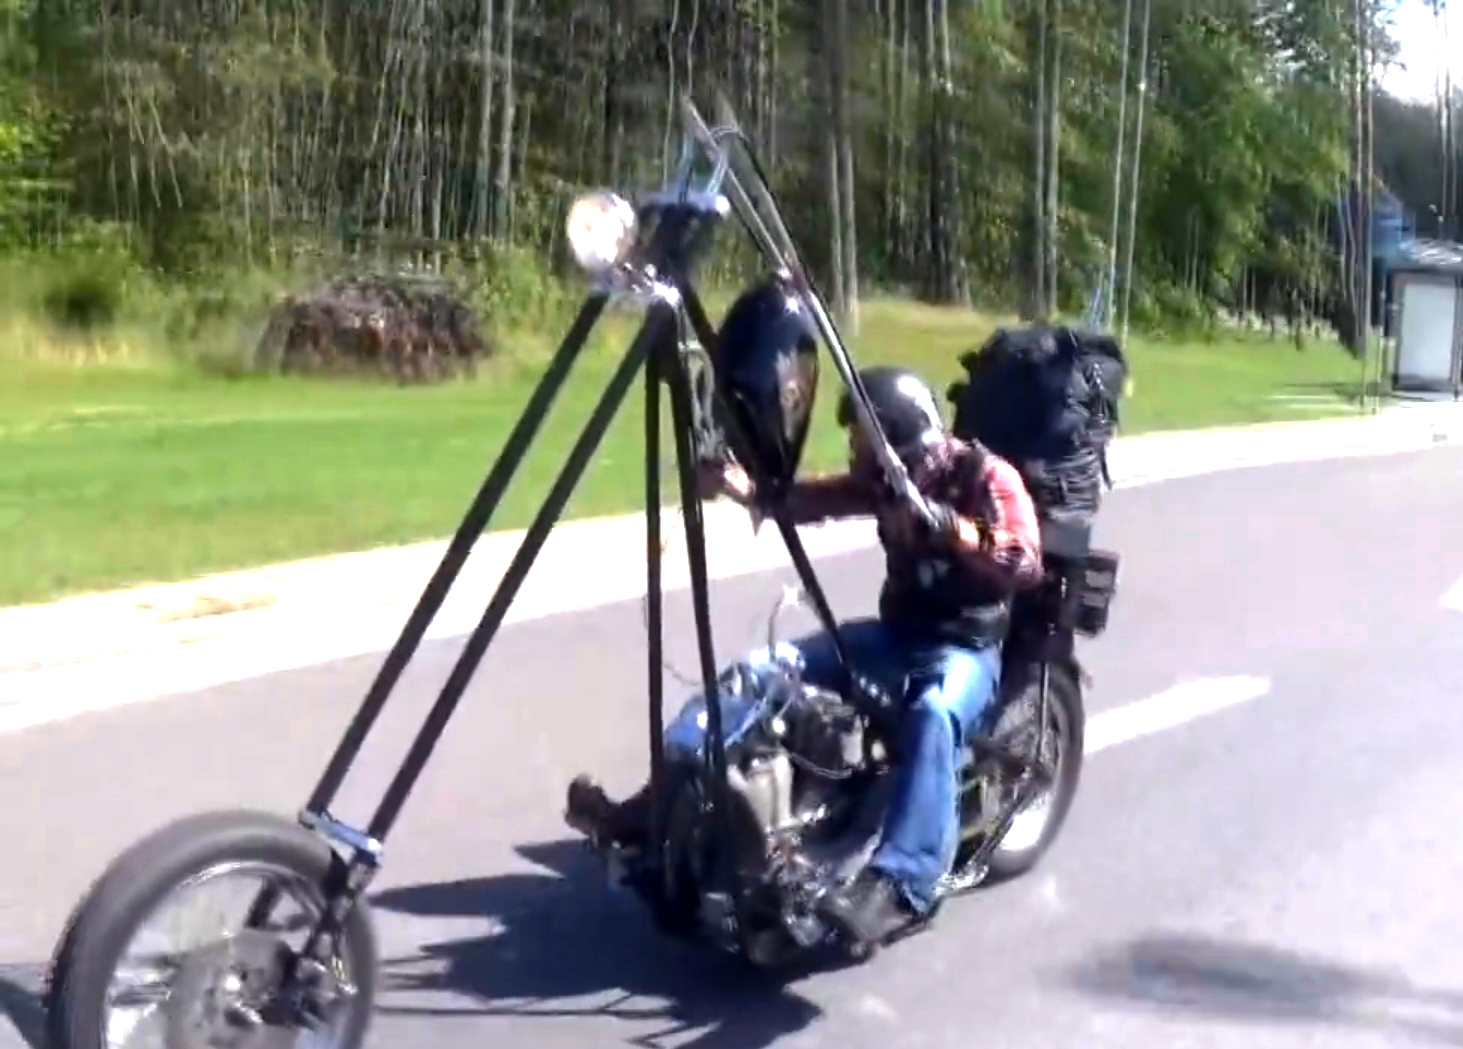 sur le vif ? - Page 40 This-is-the-most-ridiculous-apehanger-handlebar-to-date-video-98424_1